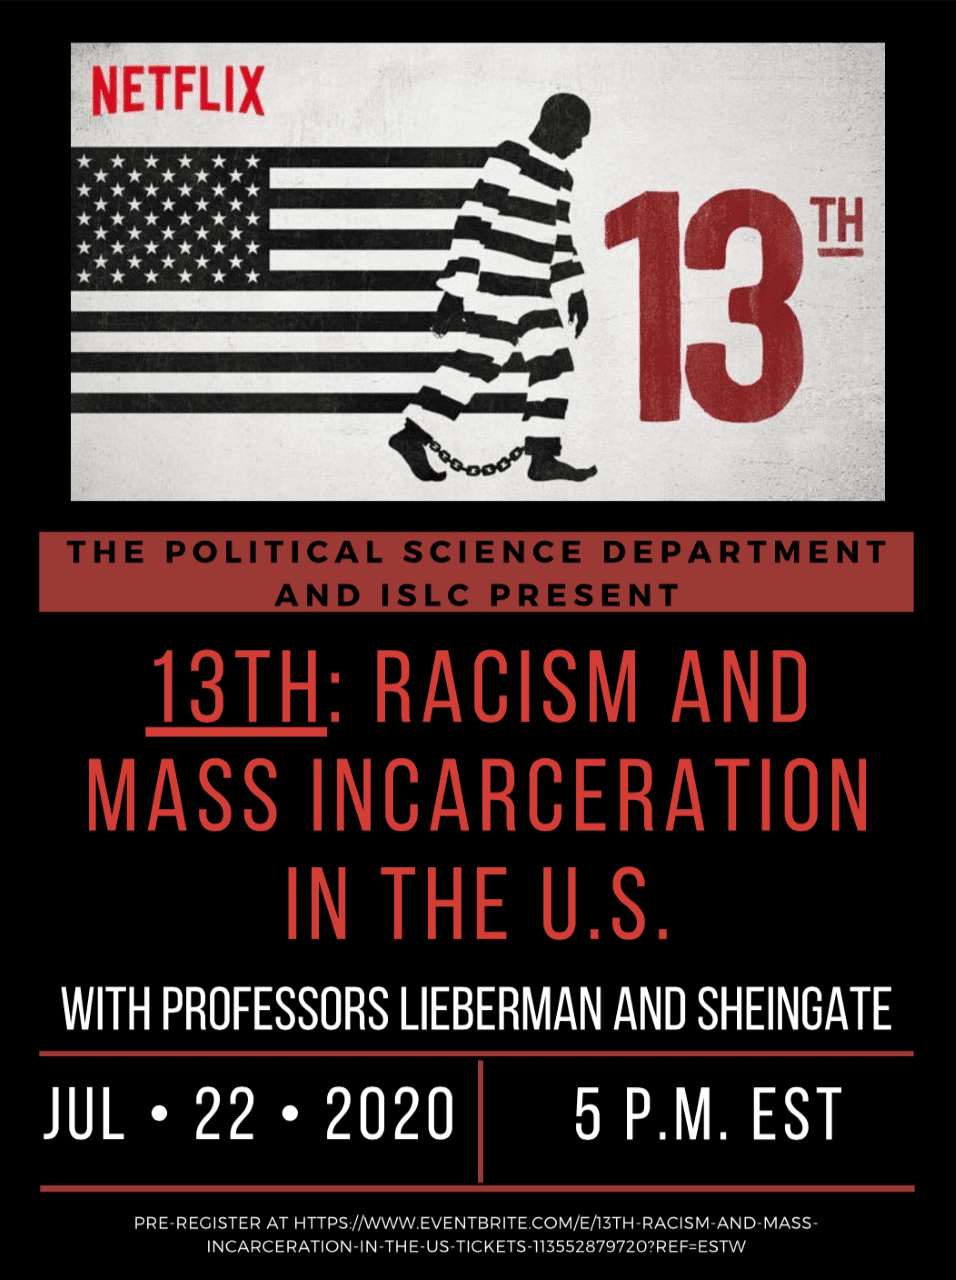 ISLC Summer Speaker Series: Racism and Mass Incarceration in the U.S.